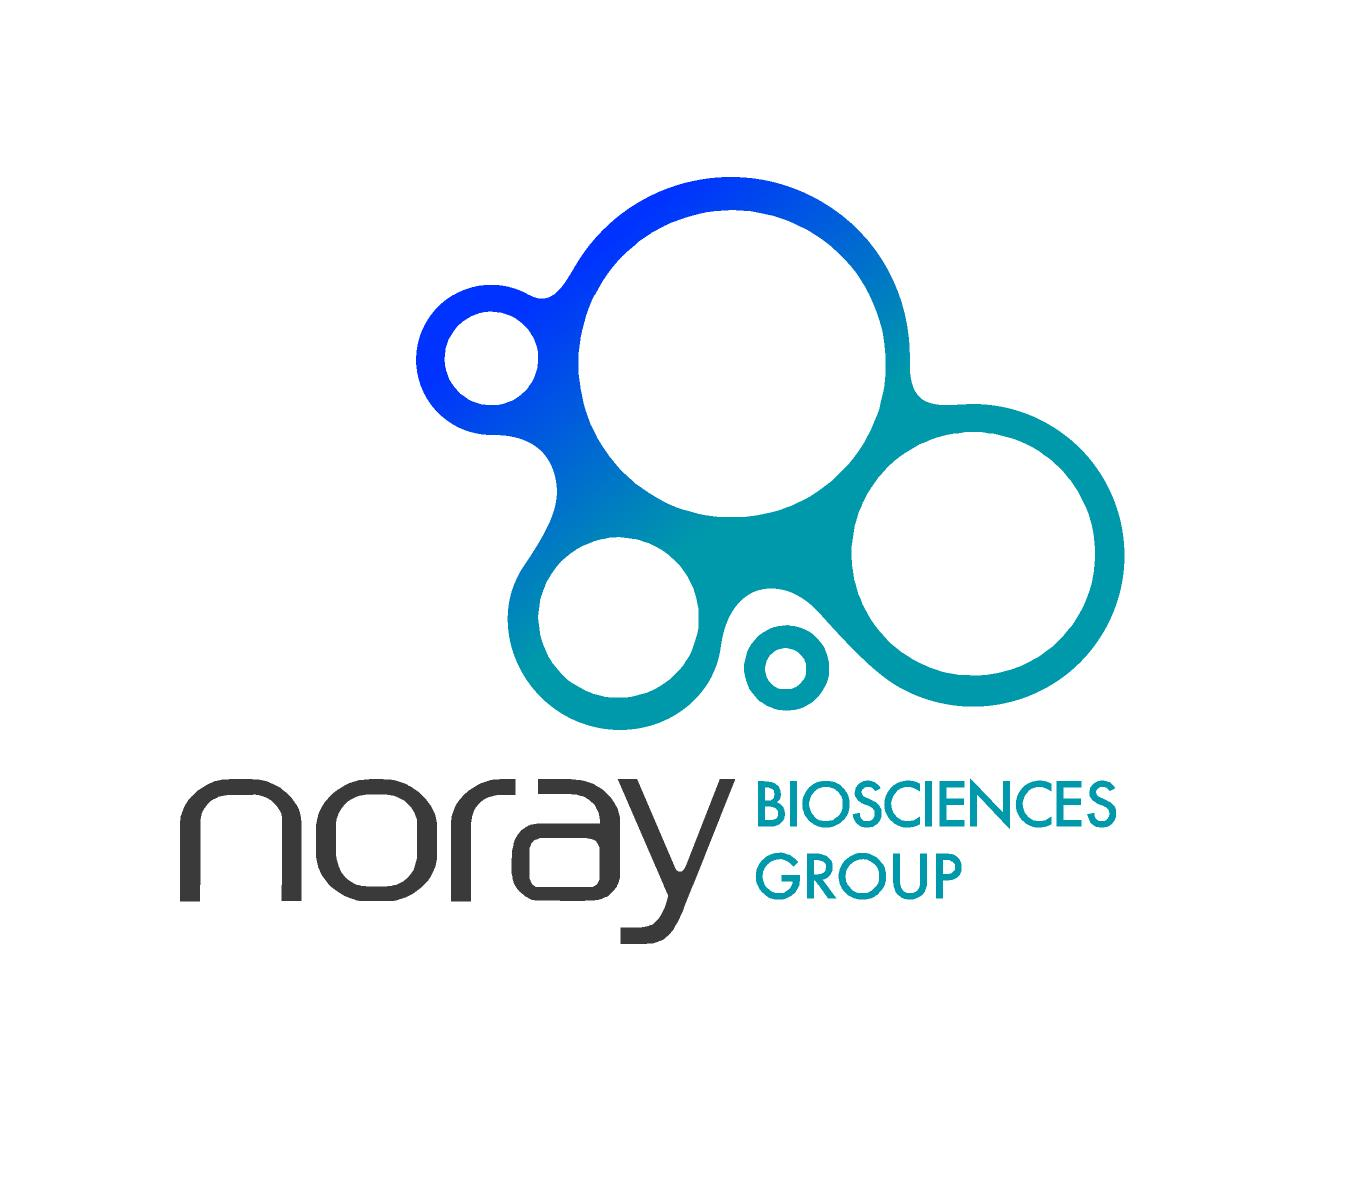 Noray Biosicience.jpg